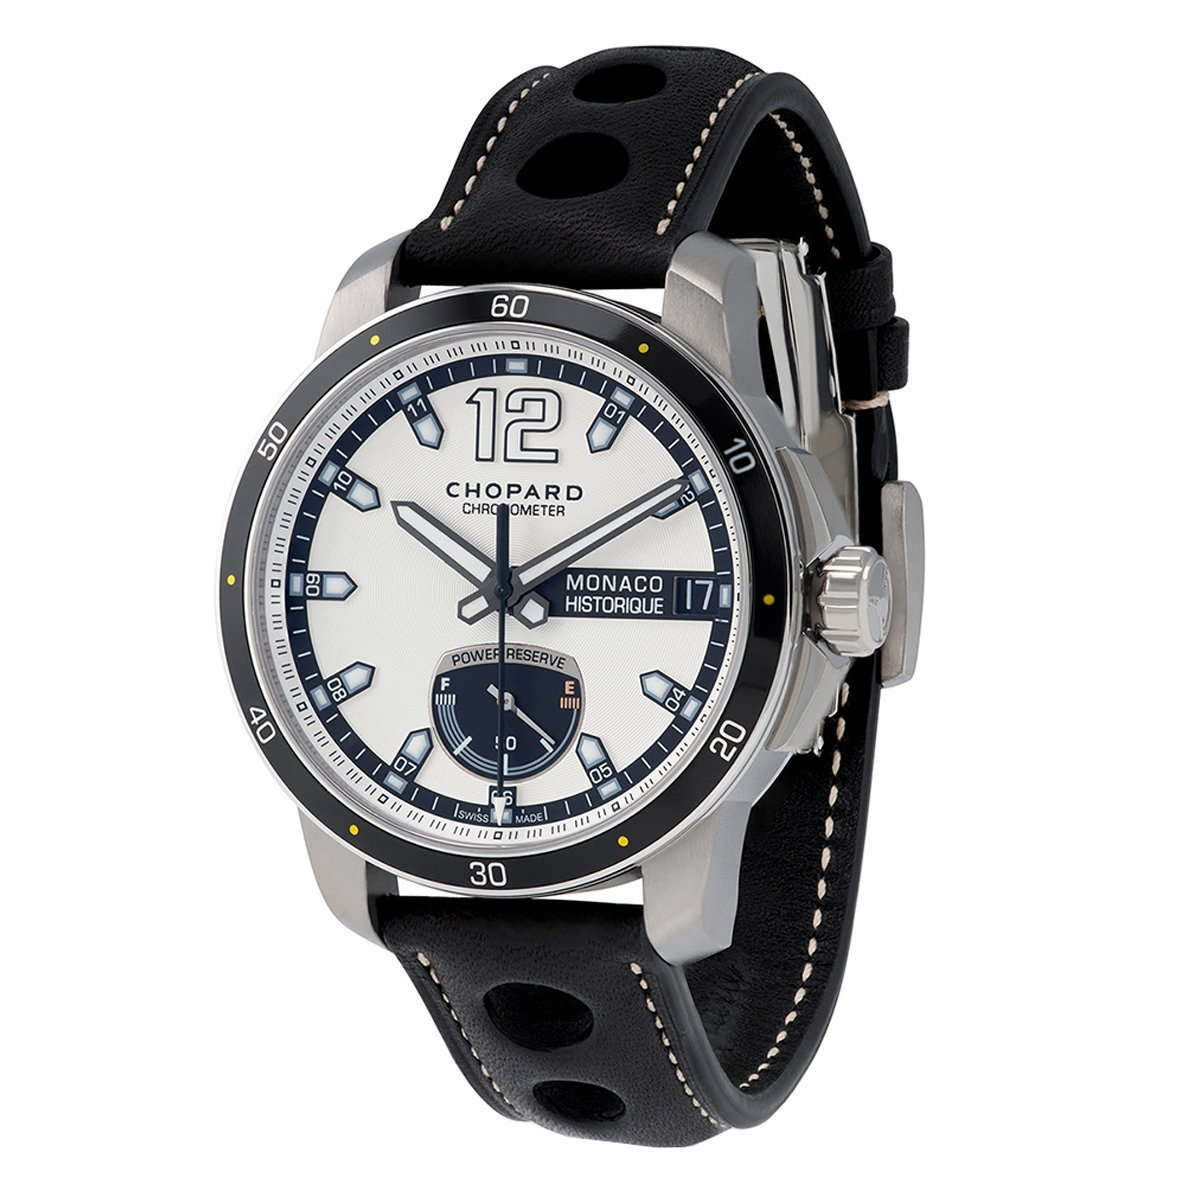 Chopard Grand Prix Monaco Historique Men's Watch Power Control Leather - Watches & Crystals